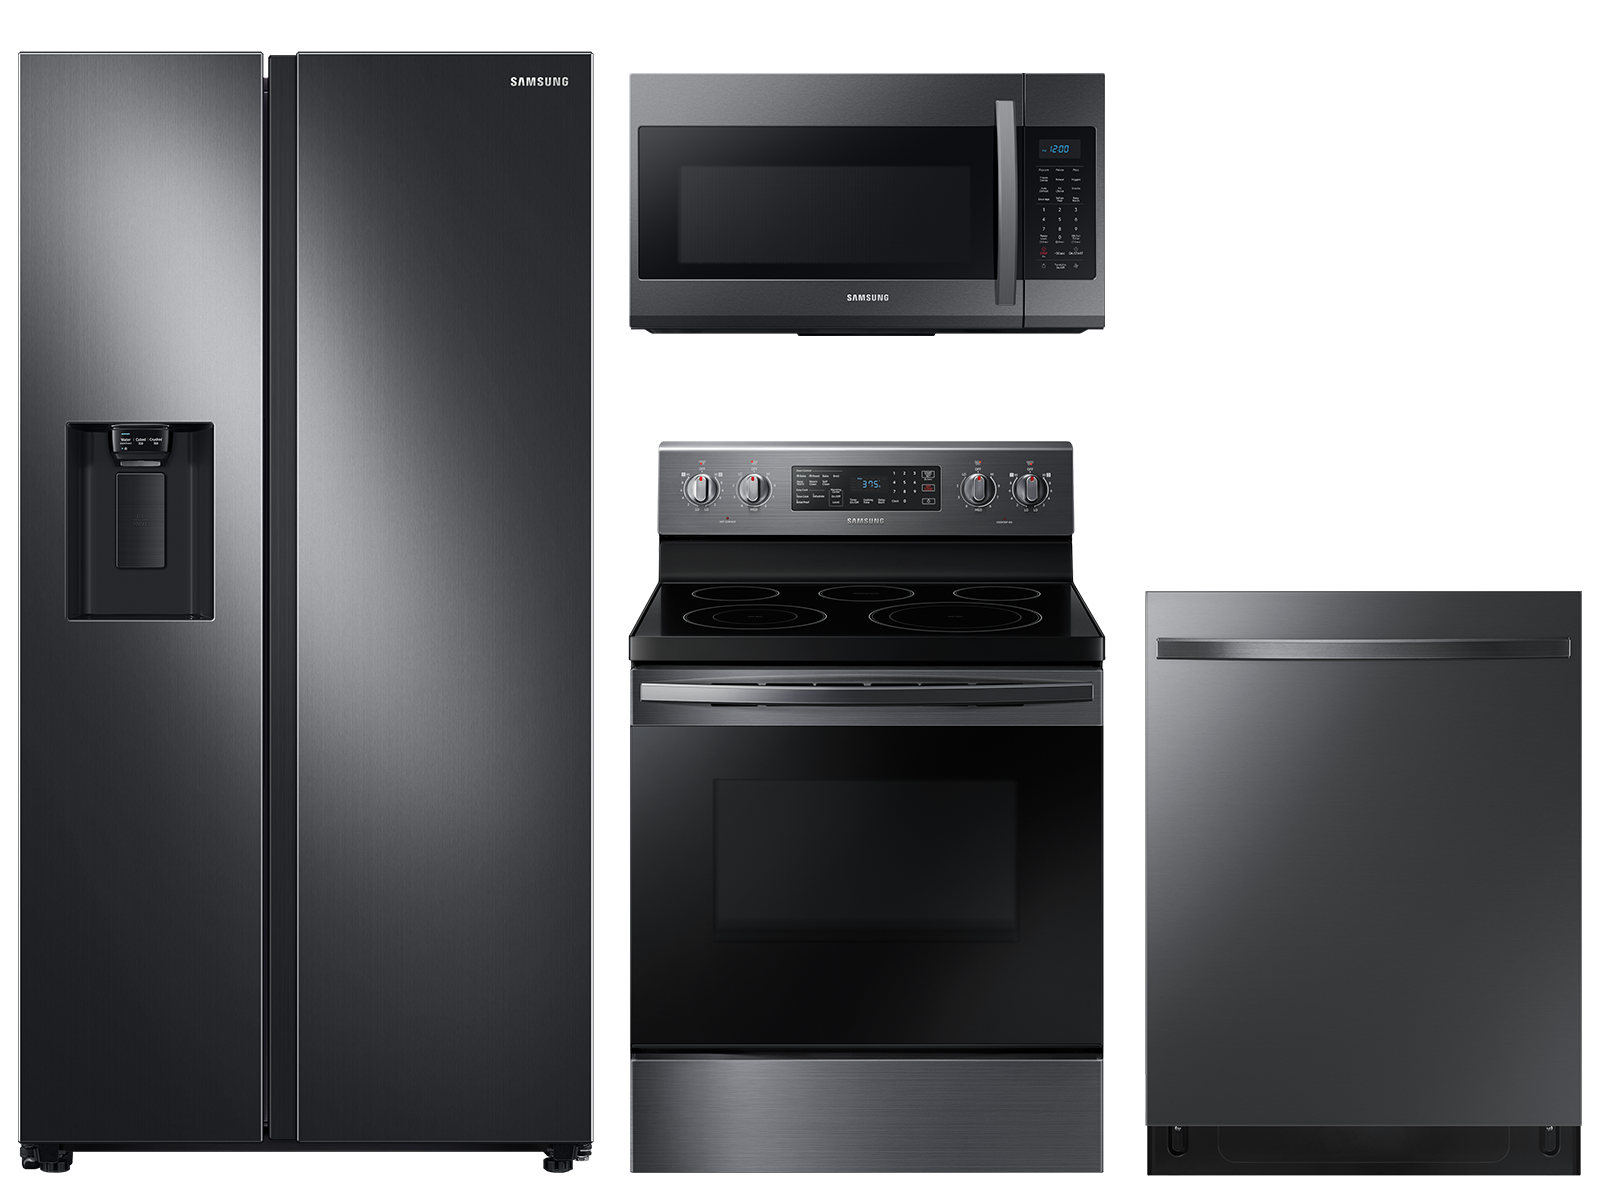 Samsung Counter Depth Side-by-Side refrigerator & electric range package in black stainless